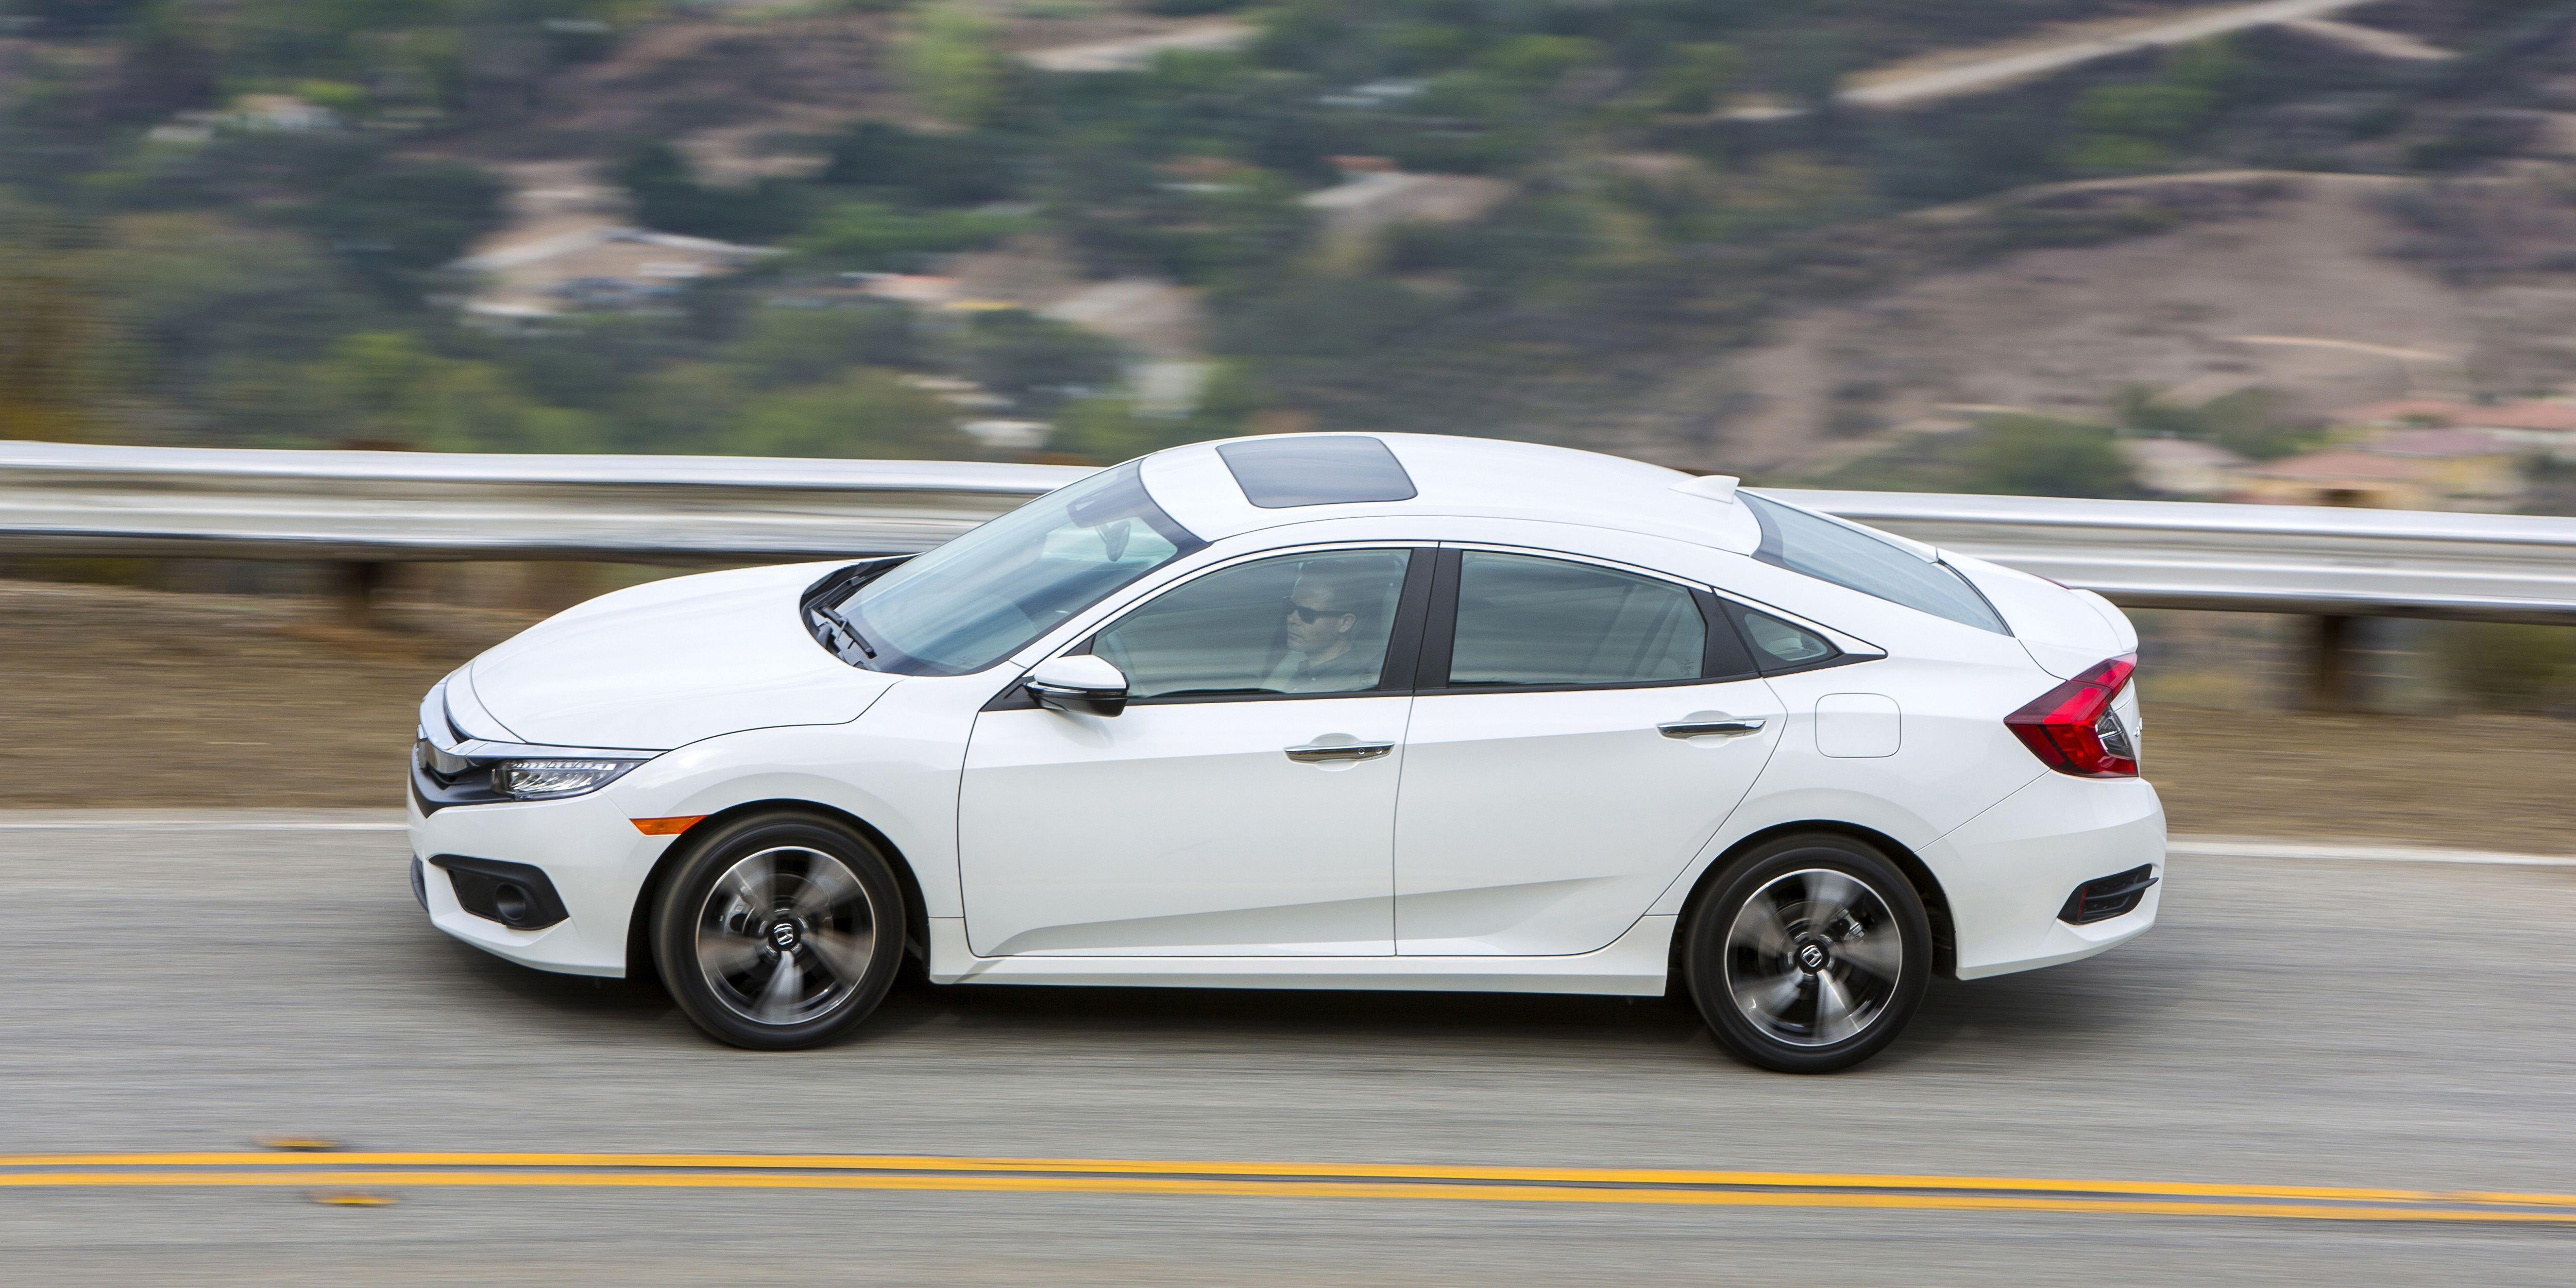 """<p>Compared to the outgoing Civic, <a href=""""http://www.roadandtrack.com/new-cars/first-drives/a26899/2016-honda-civic-first-drive/"""" target=""""_blank"""">the new one is better</a> by leaps and bounds. It's still a Honda, and people are still going to buy it in droves because of the badge on the hood. It will probably still be reliable, but it's also been injected with a dose of fun that we didn't expect. On a winding back road, even mainstream buyer won't be able to resist the new Civic's sporty charms.</p>"""